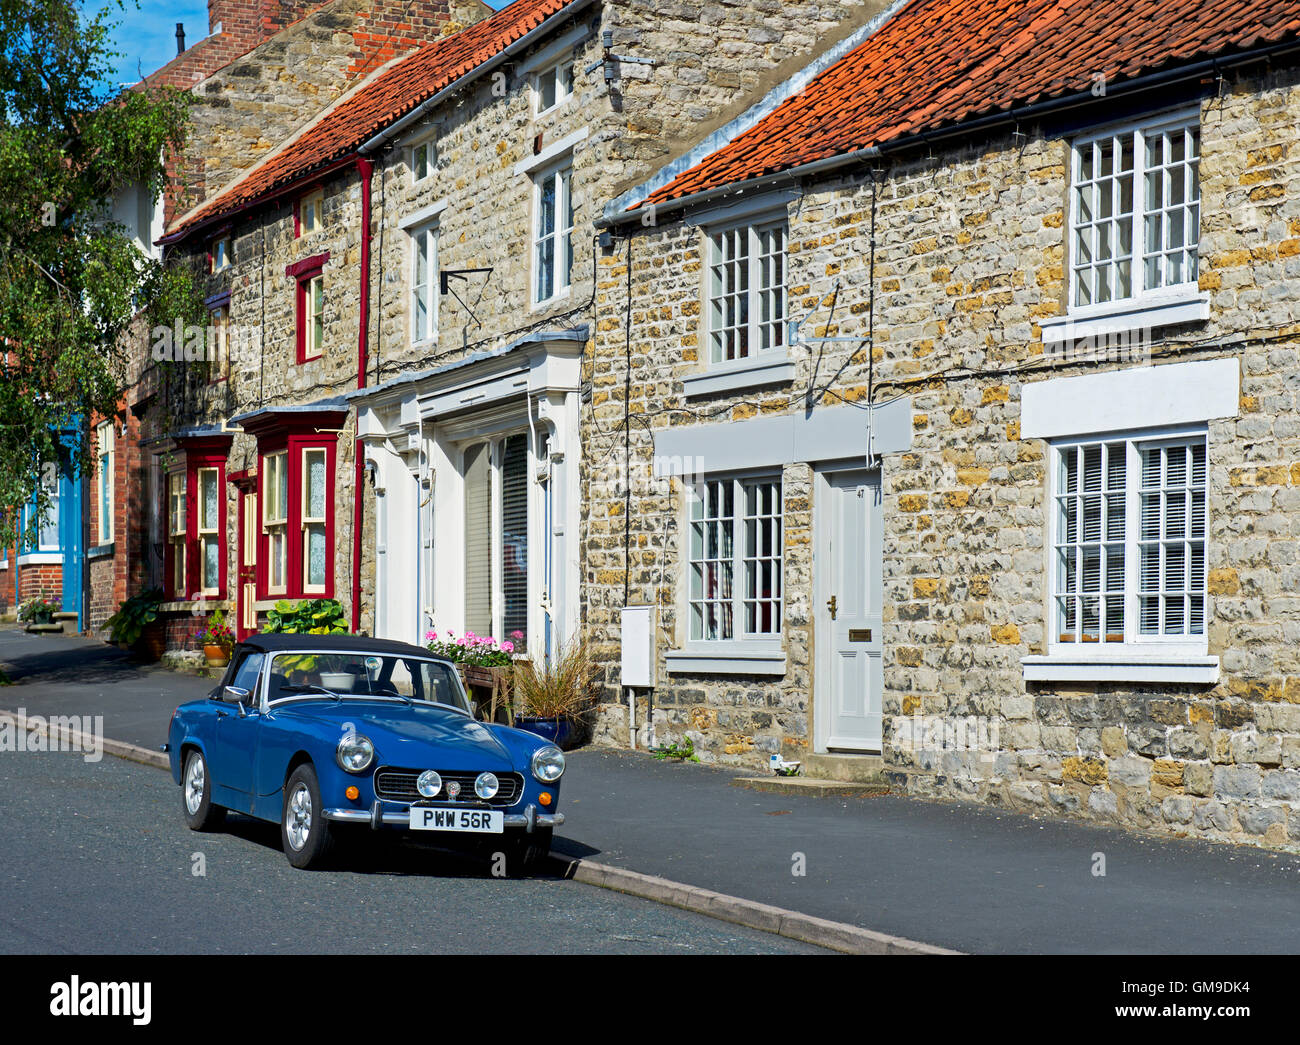 MG sports car parked in Kirkbymoorside, North Yorkshire, England UK - Stock Image